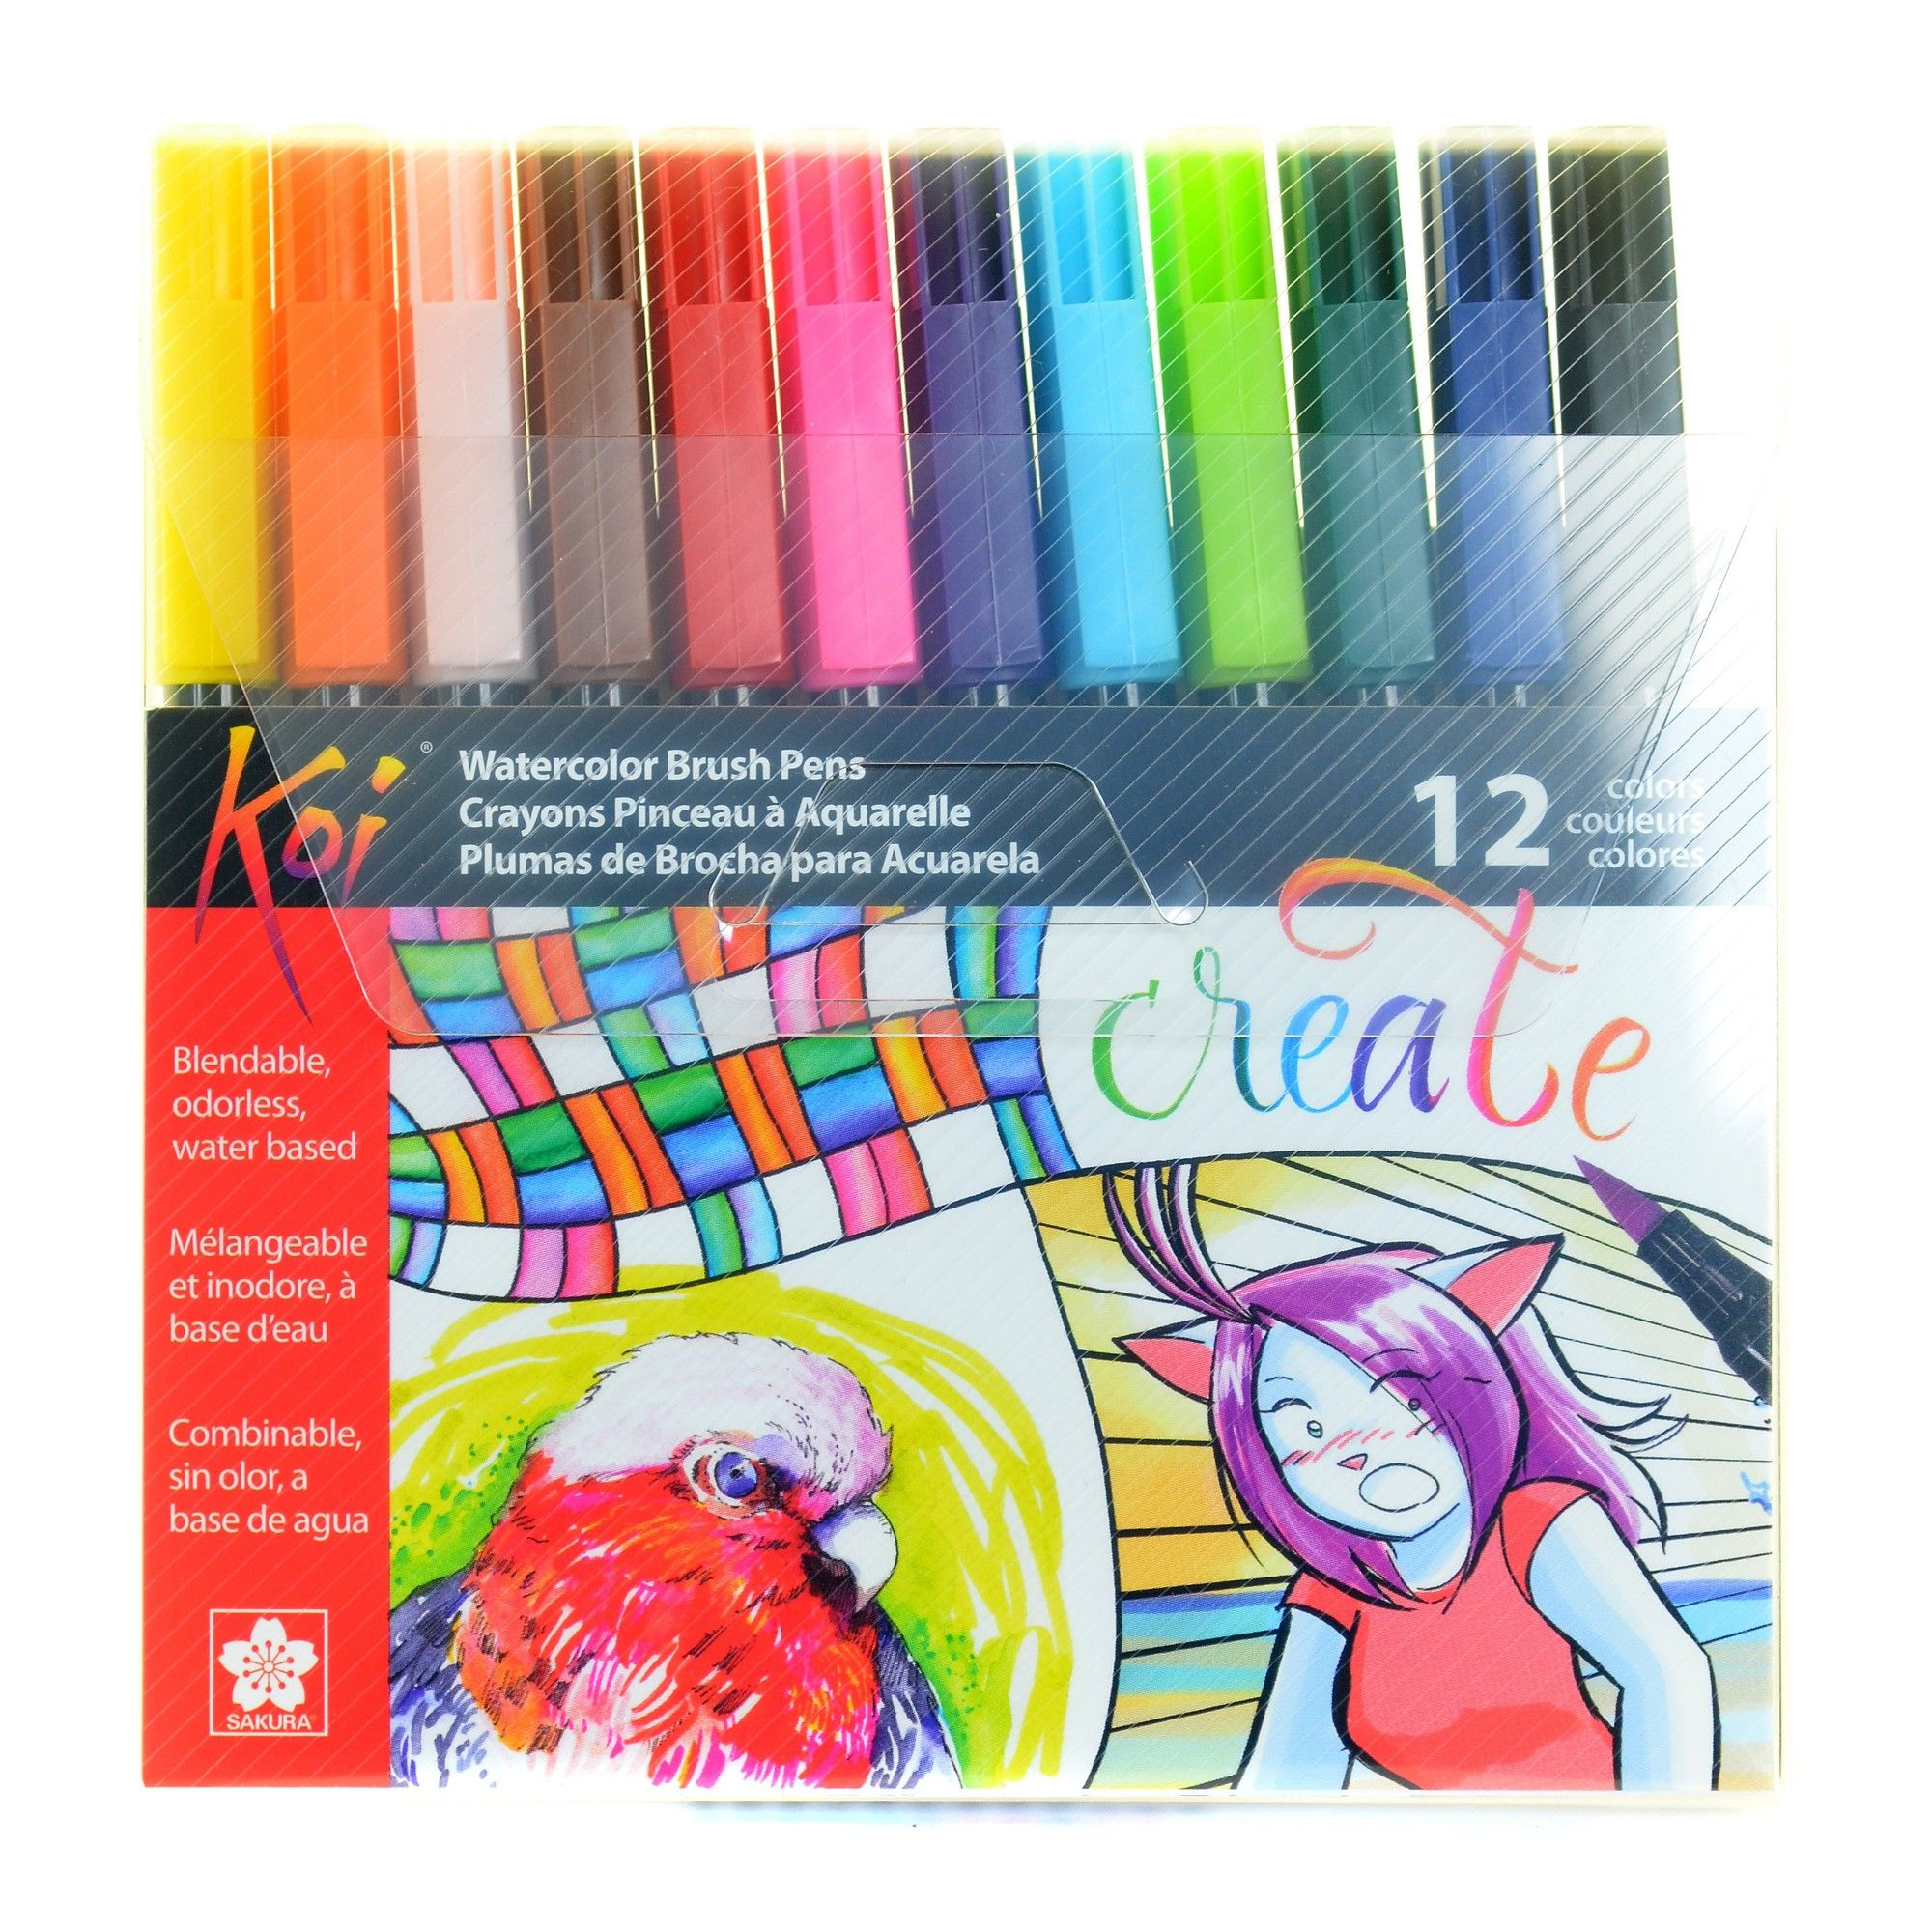 Coloring Brush Pen Set Koi 12ct Coloring Brush Pen Brush Pen